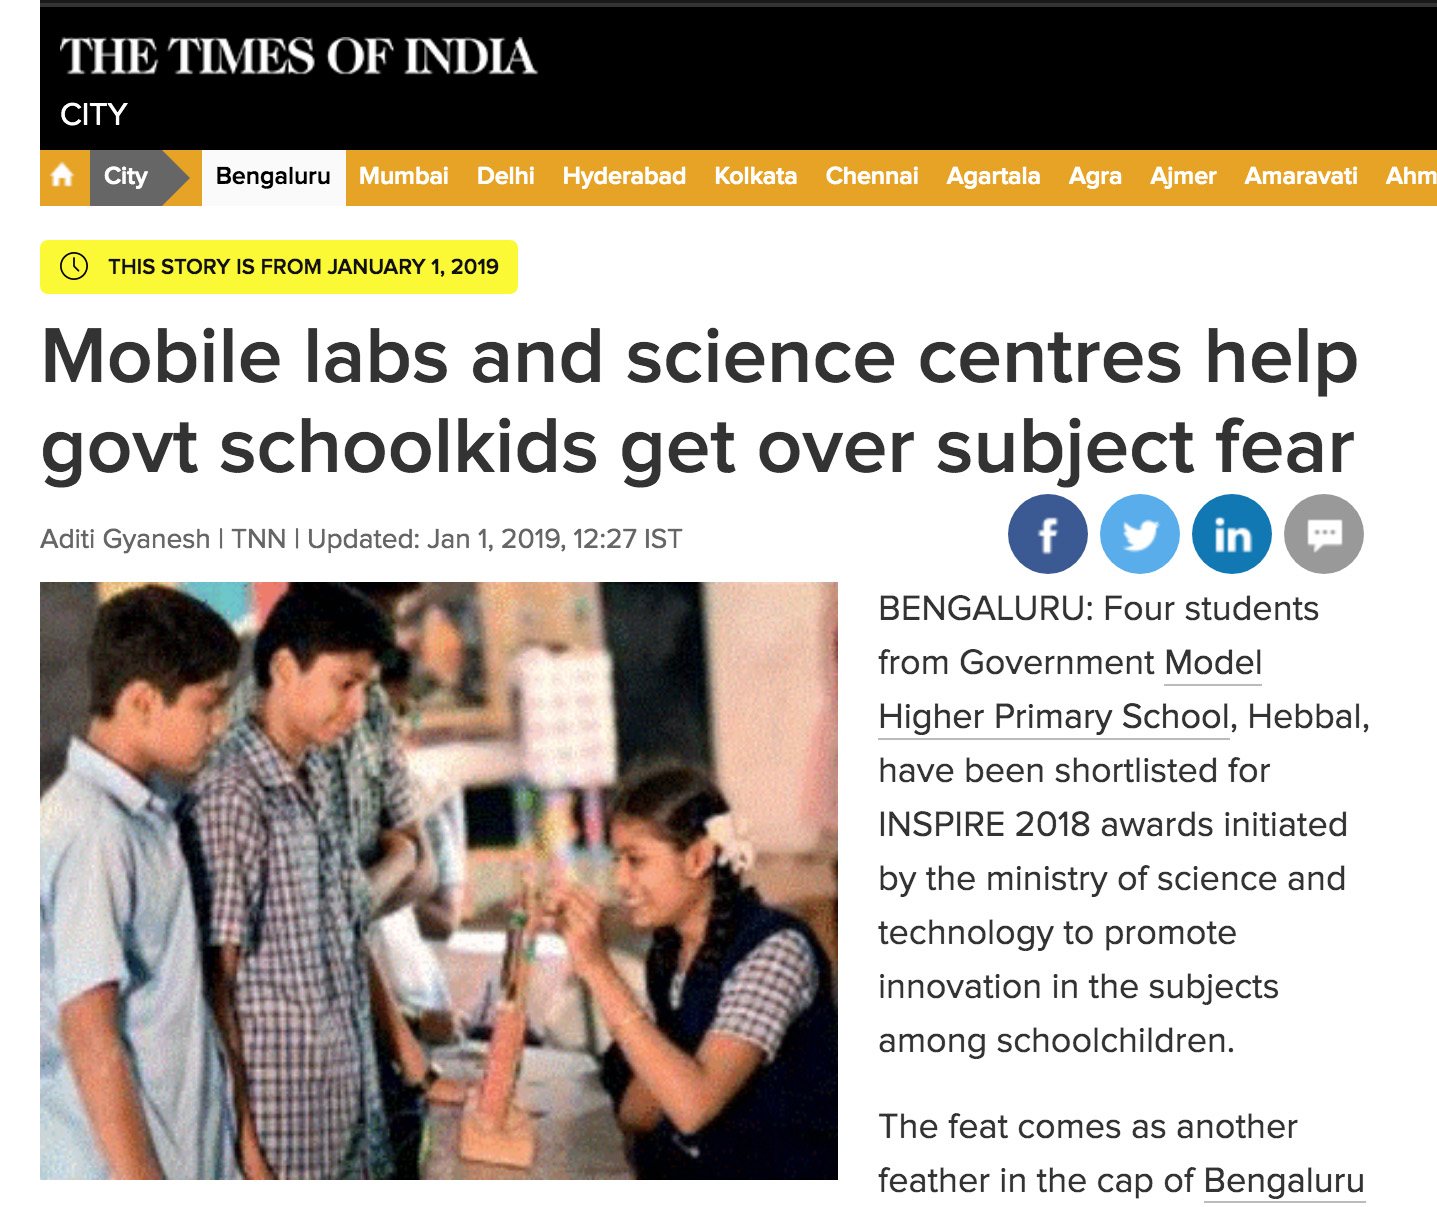 Mobile labs and science centres help govt schoolkids get over subject fear